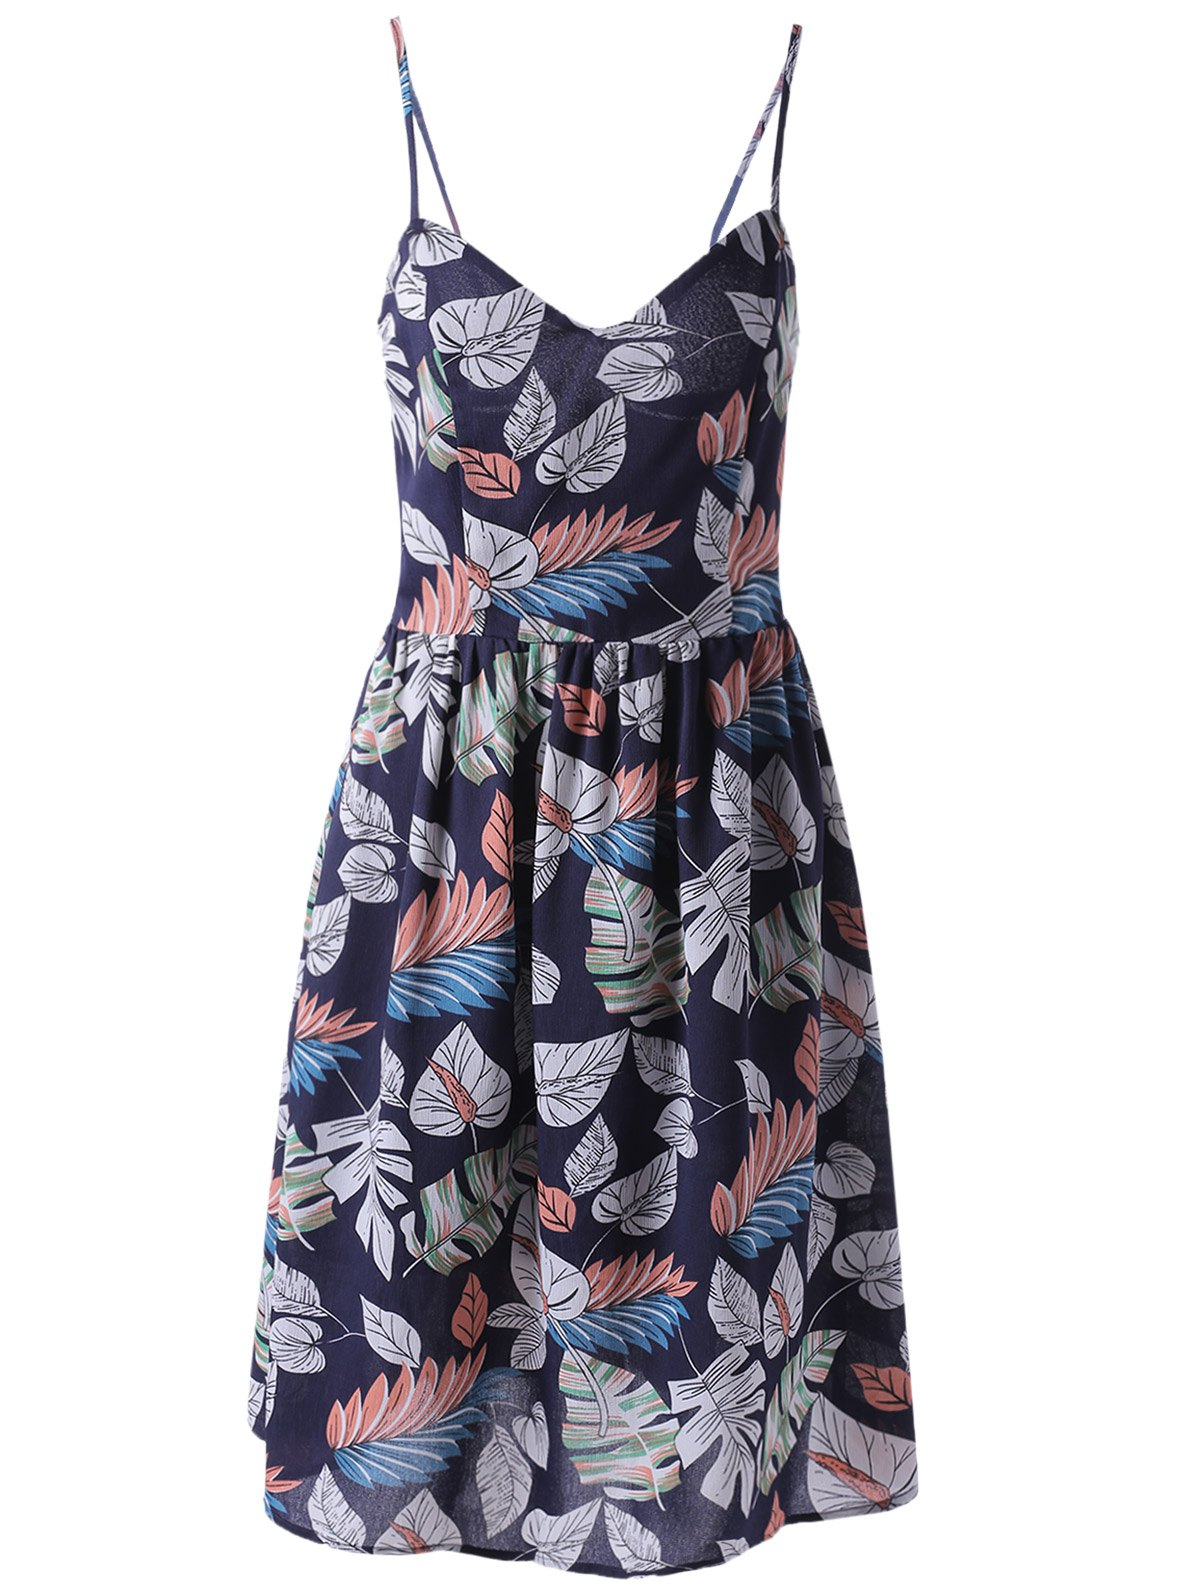 Fashionable Printed Spaghetti Straps Dress For Women DRESSFO